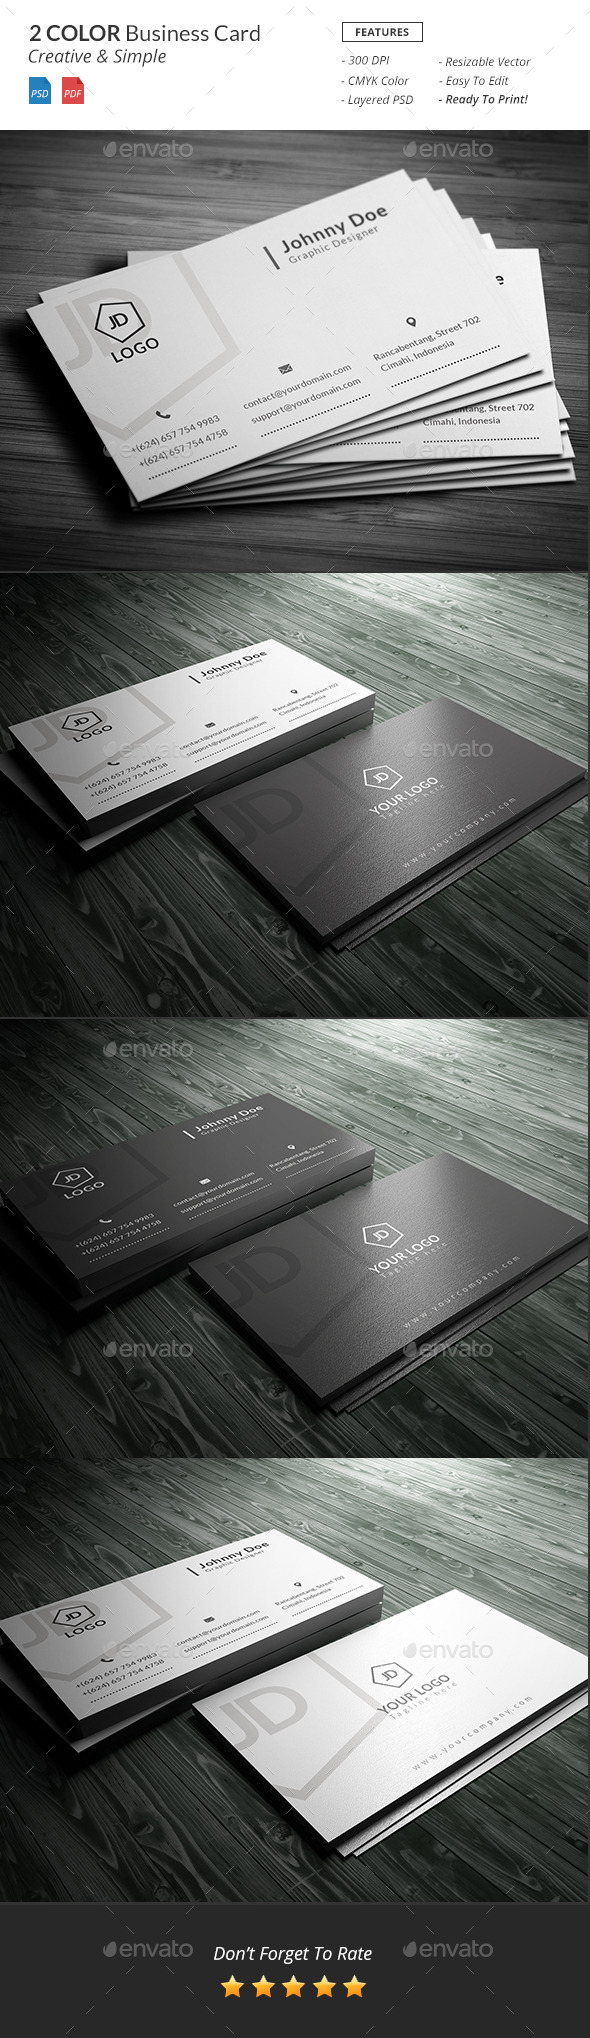 GraphicRiver Black & White Business Card 10916944